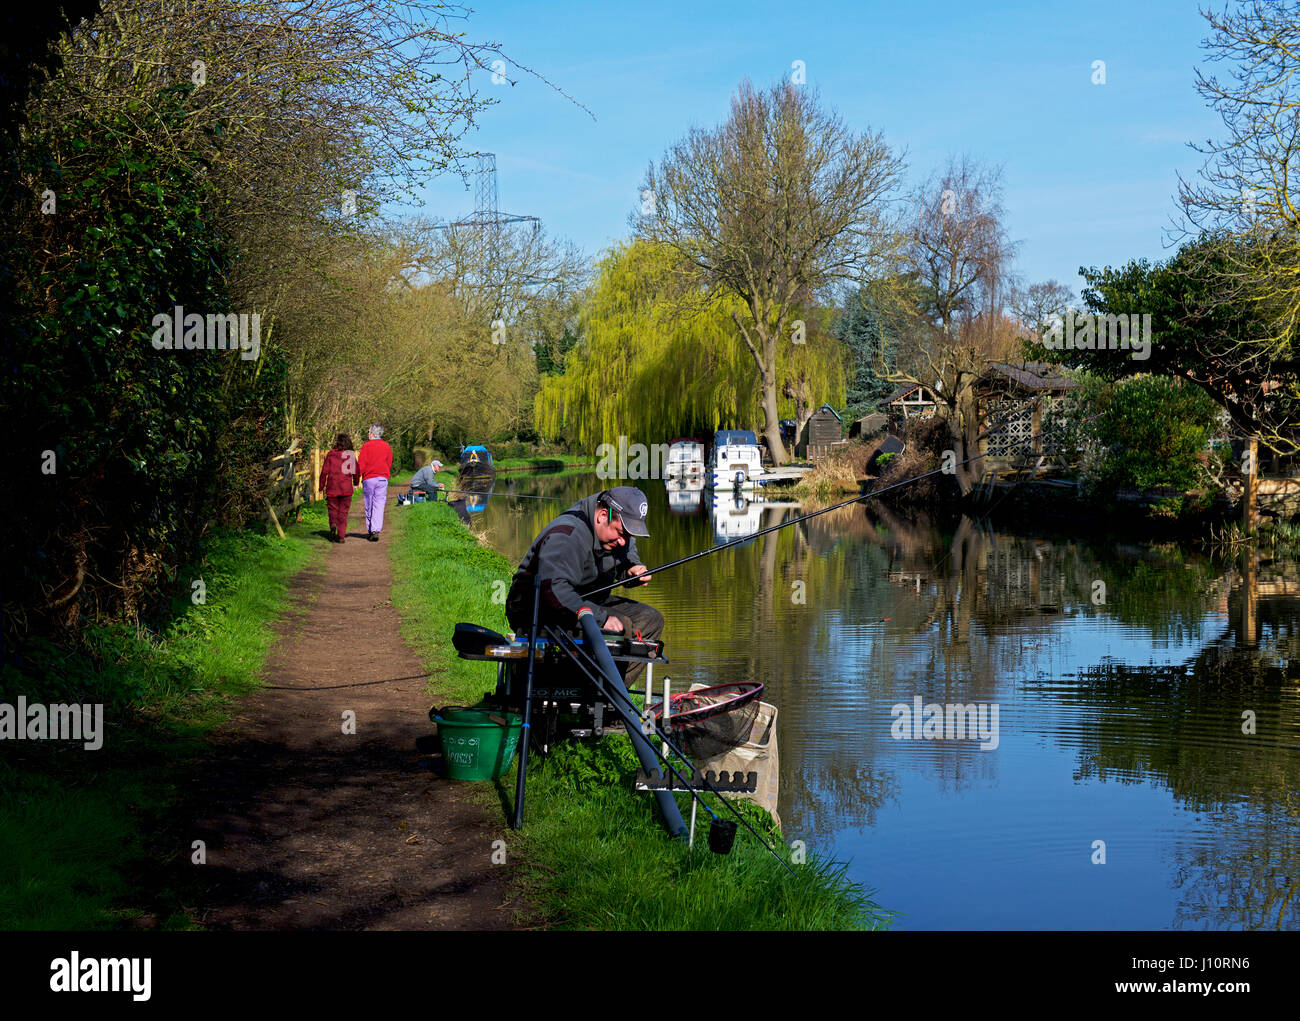 The River Soar at Barrow upon Soar, Leicestershire, England UK - Stock Image